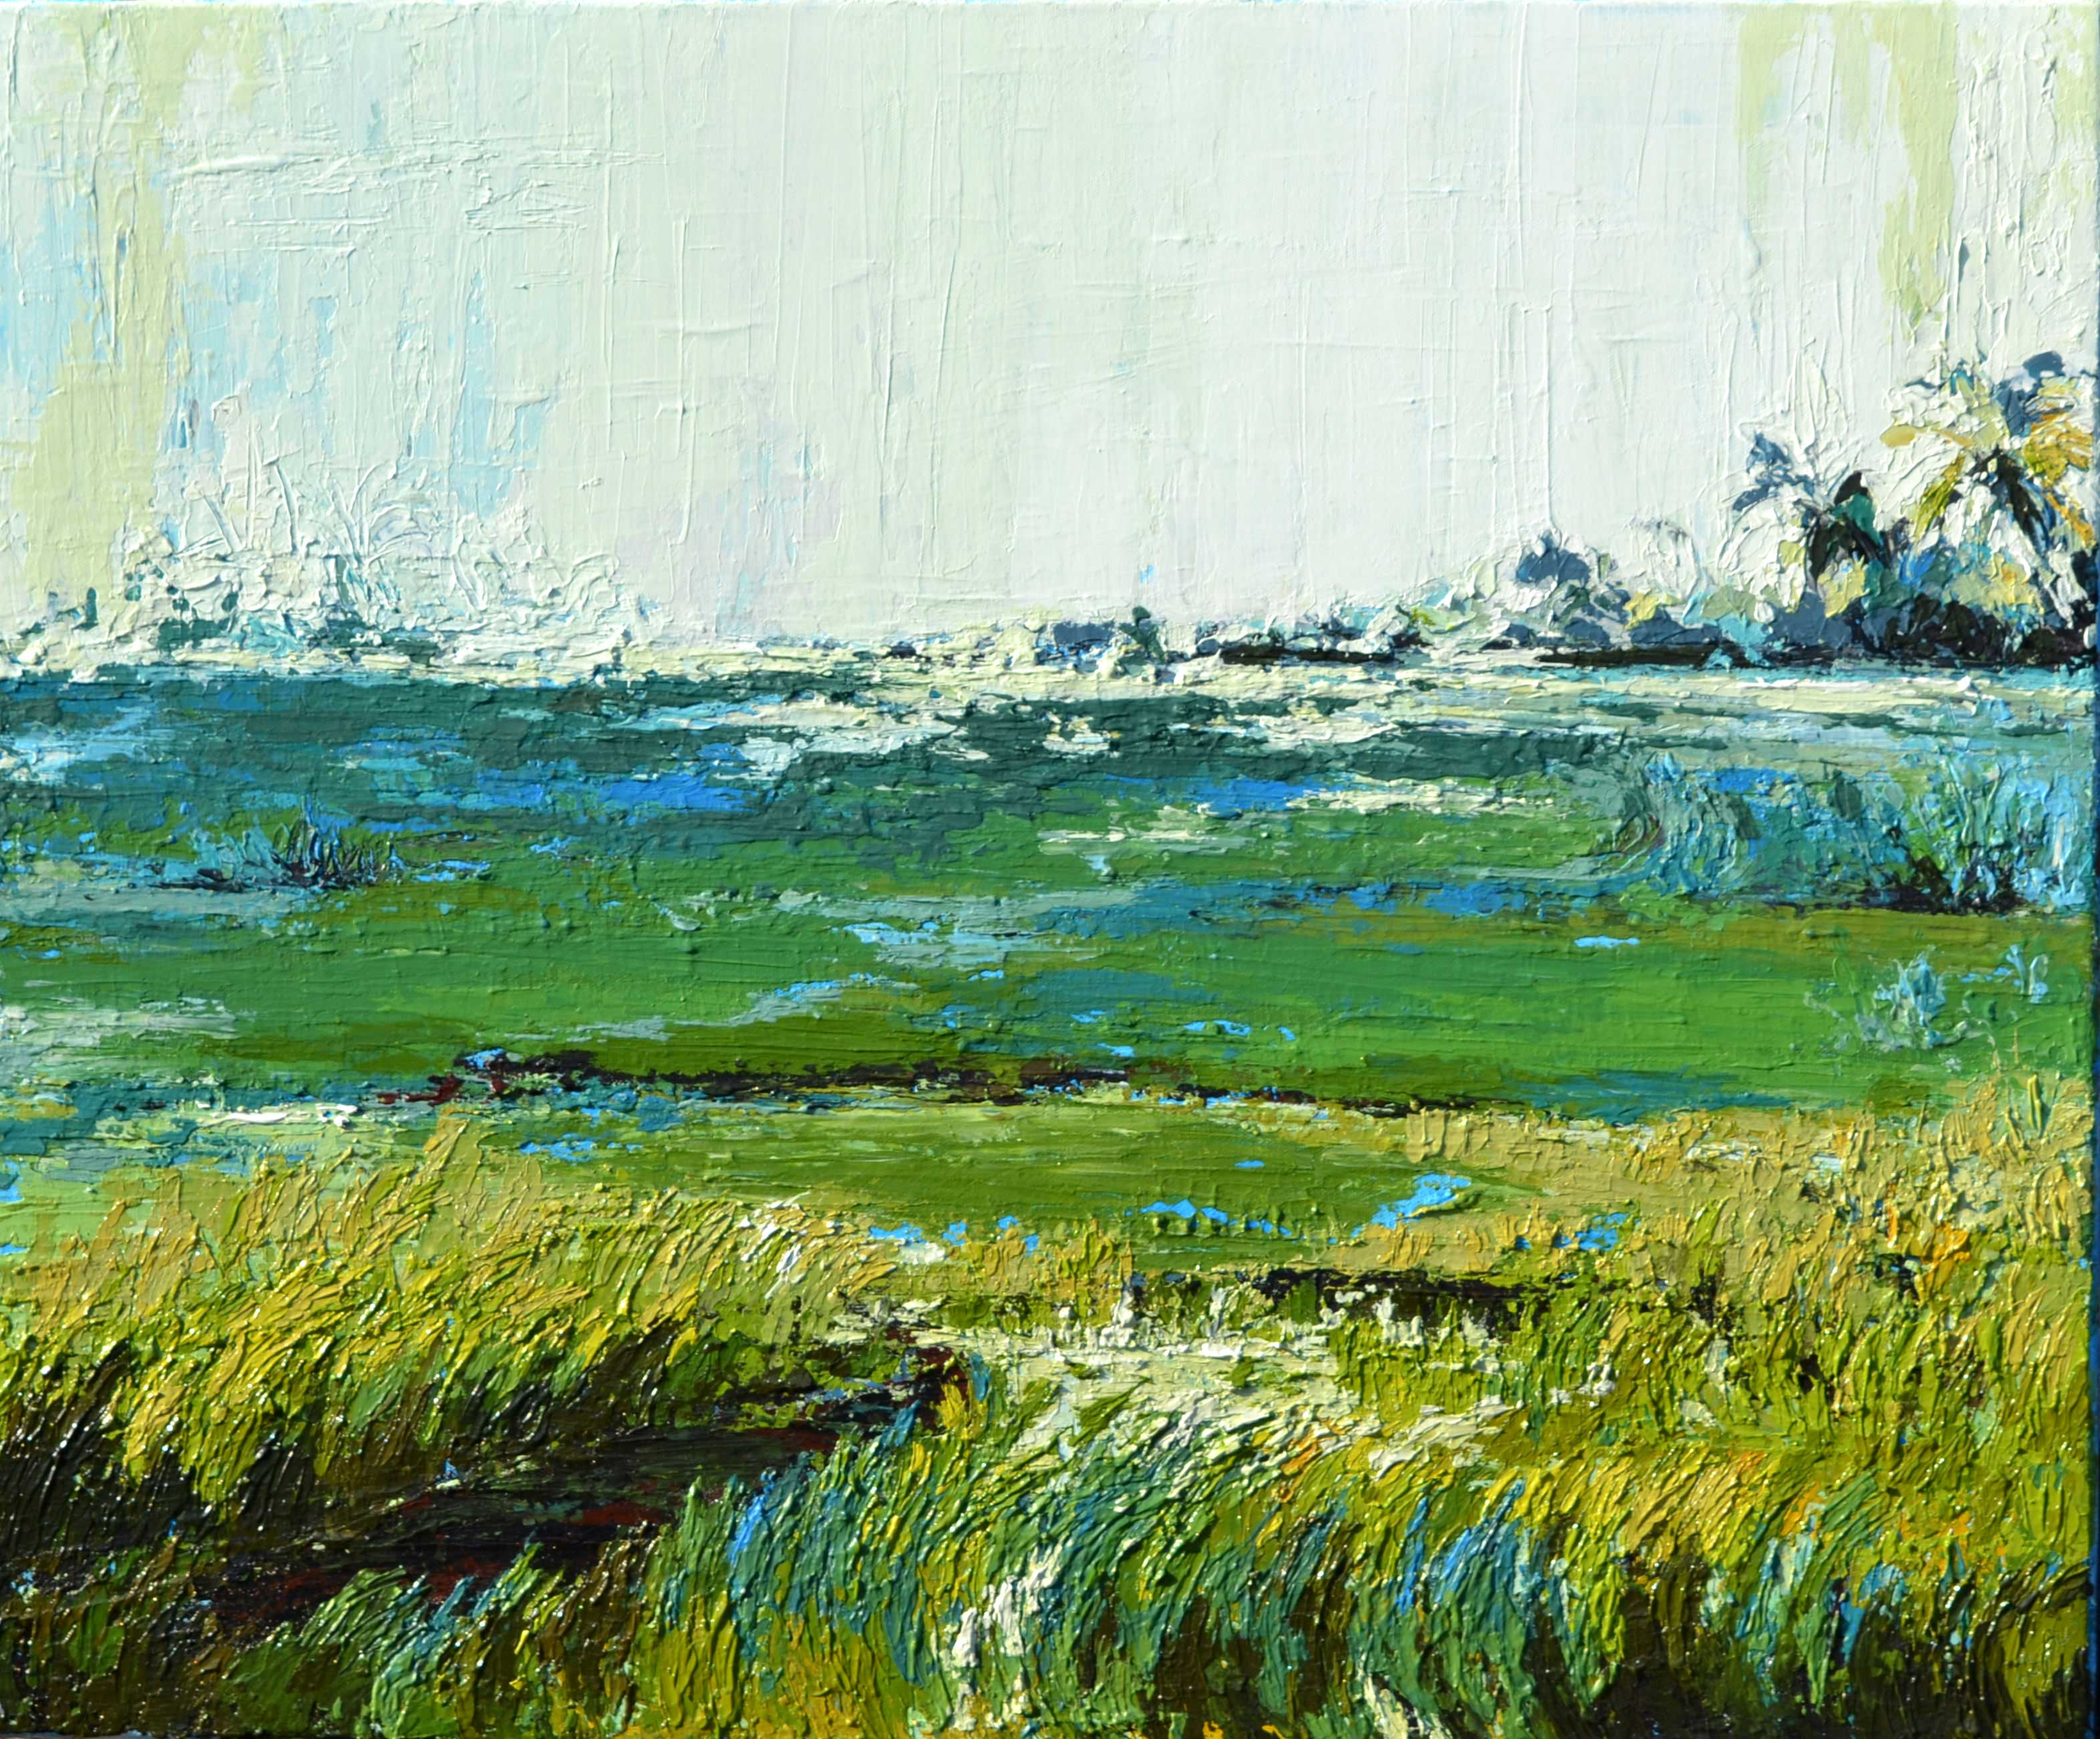 abstract landscape painting with coconut trees and  rice fields, painting on sale